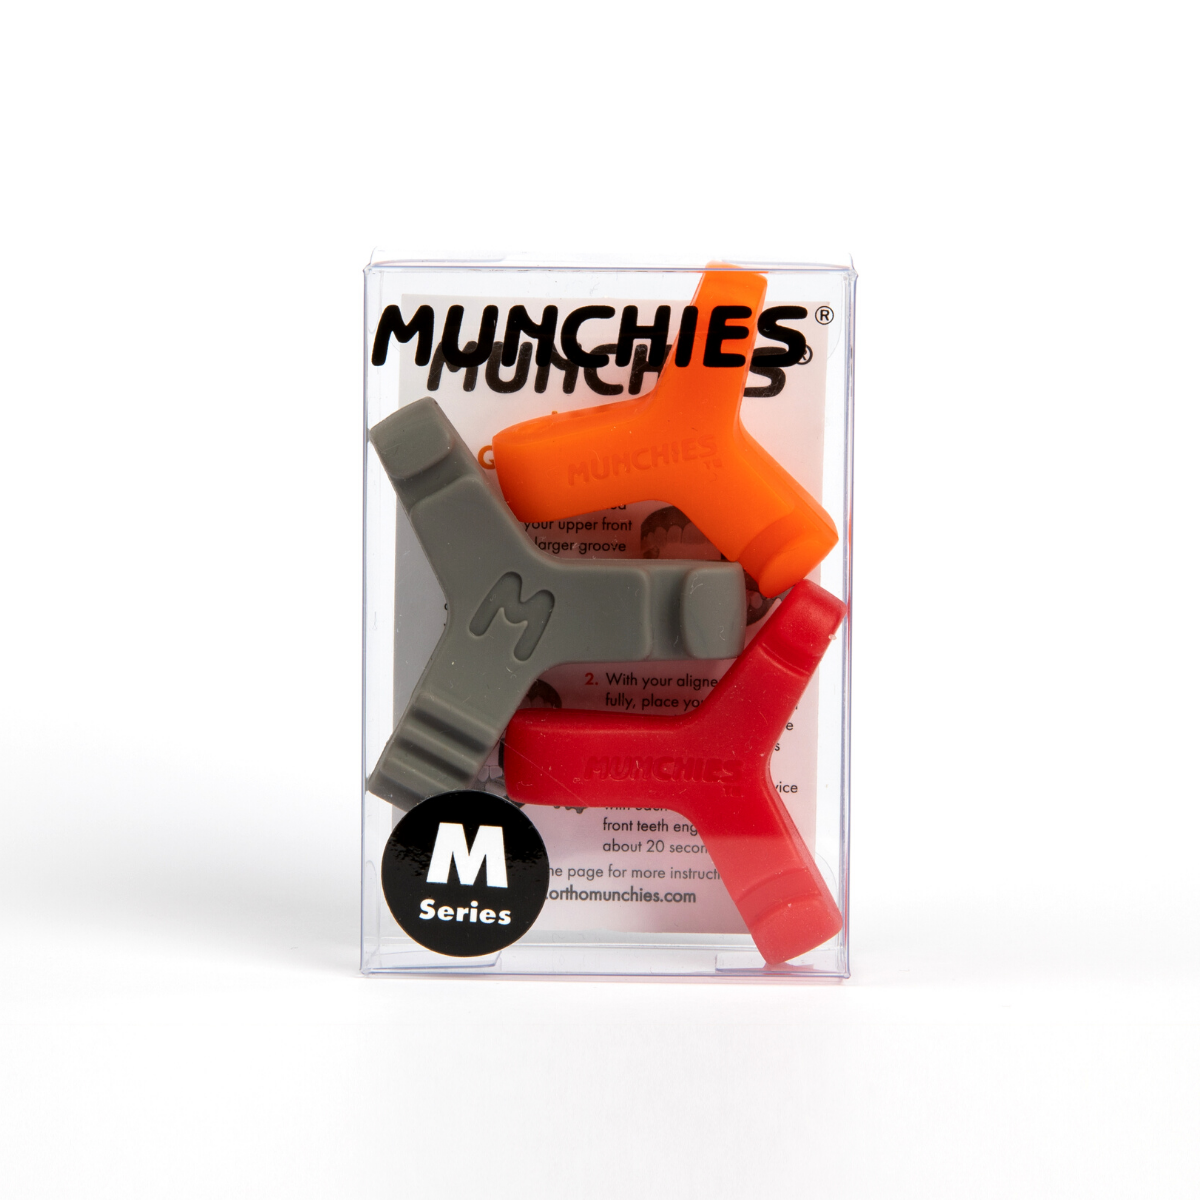 Munchies® M-Series and Original 3 piece pack